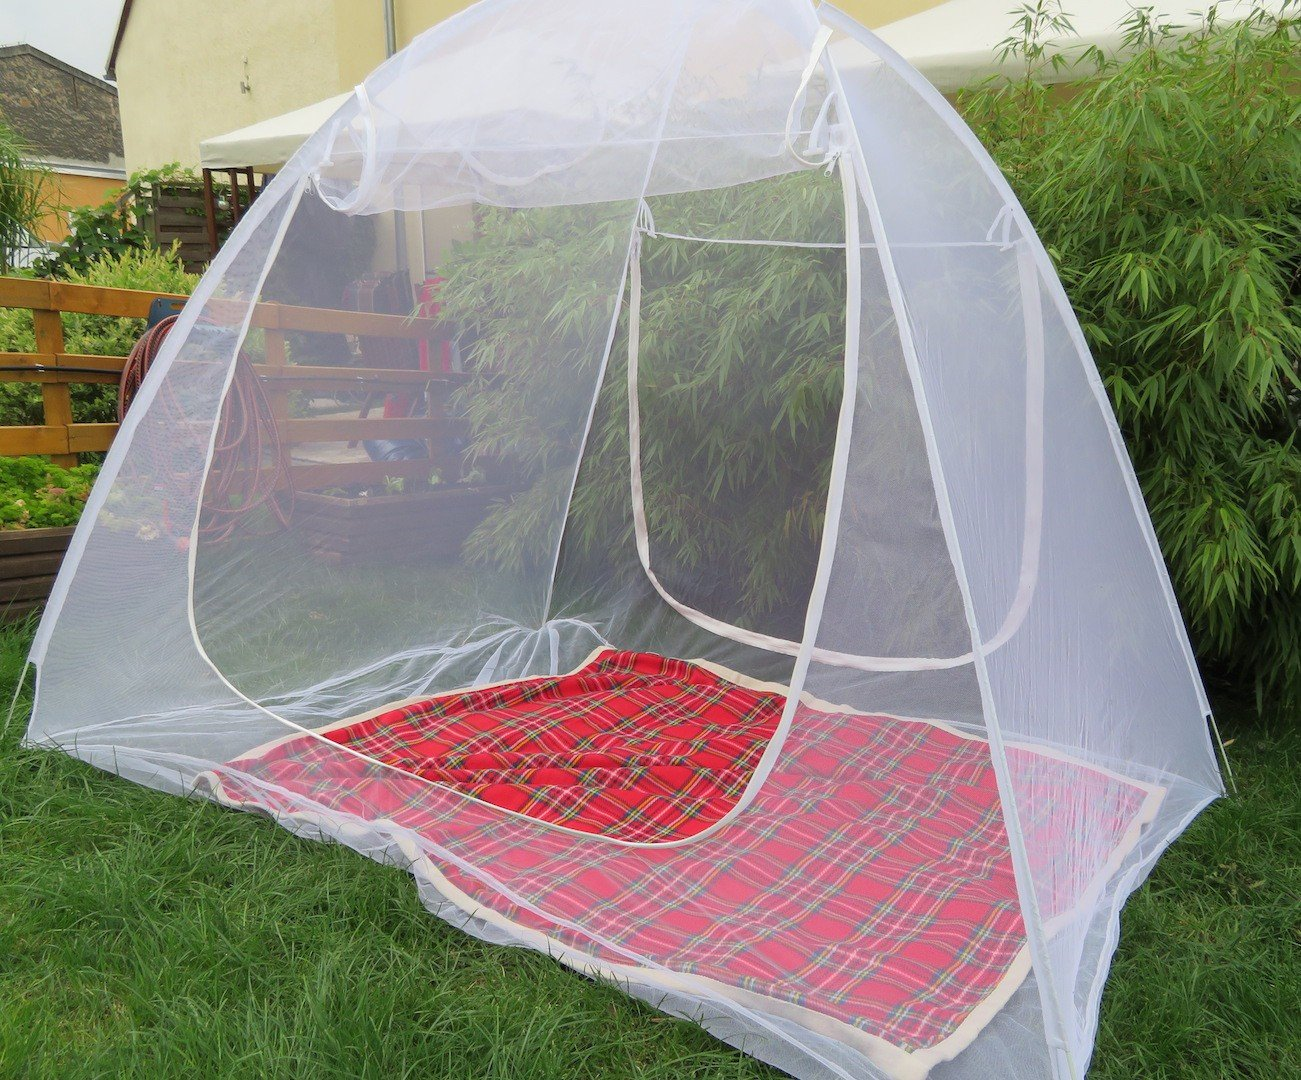 s/o® Mobile 200X150X148CM Mosquito Repellent Mosquito Net Mesh Insect Protection Mosquito Net Bed Canopy Pop up Tent Schramm Onlinehandel